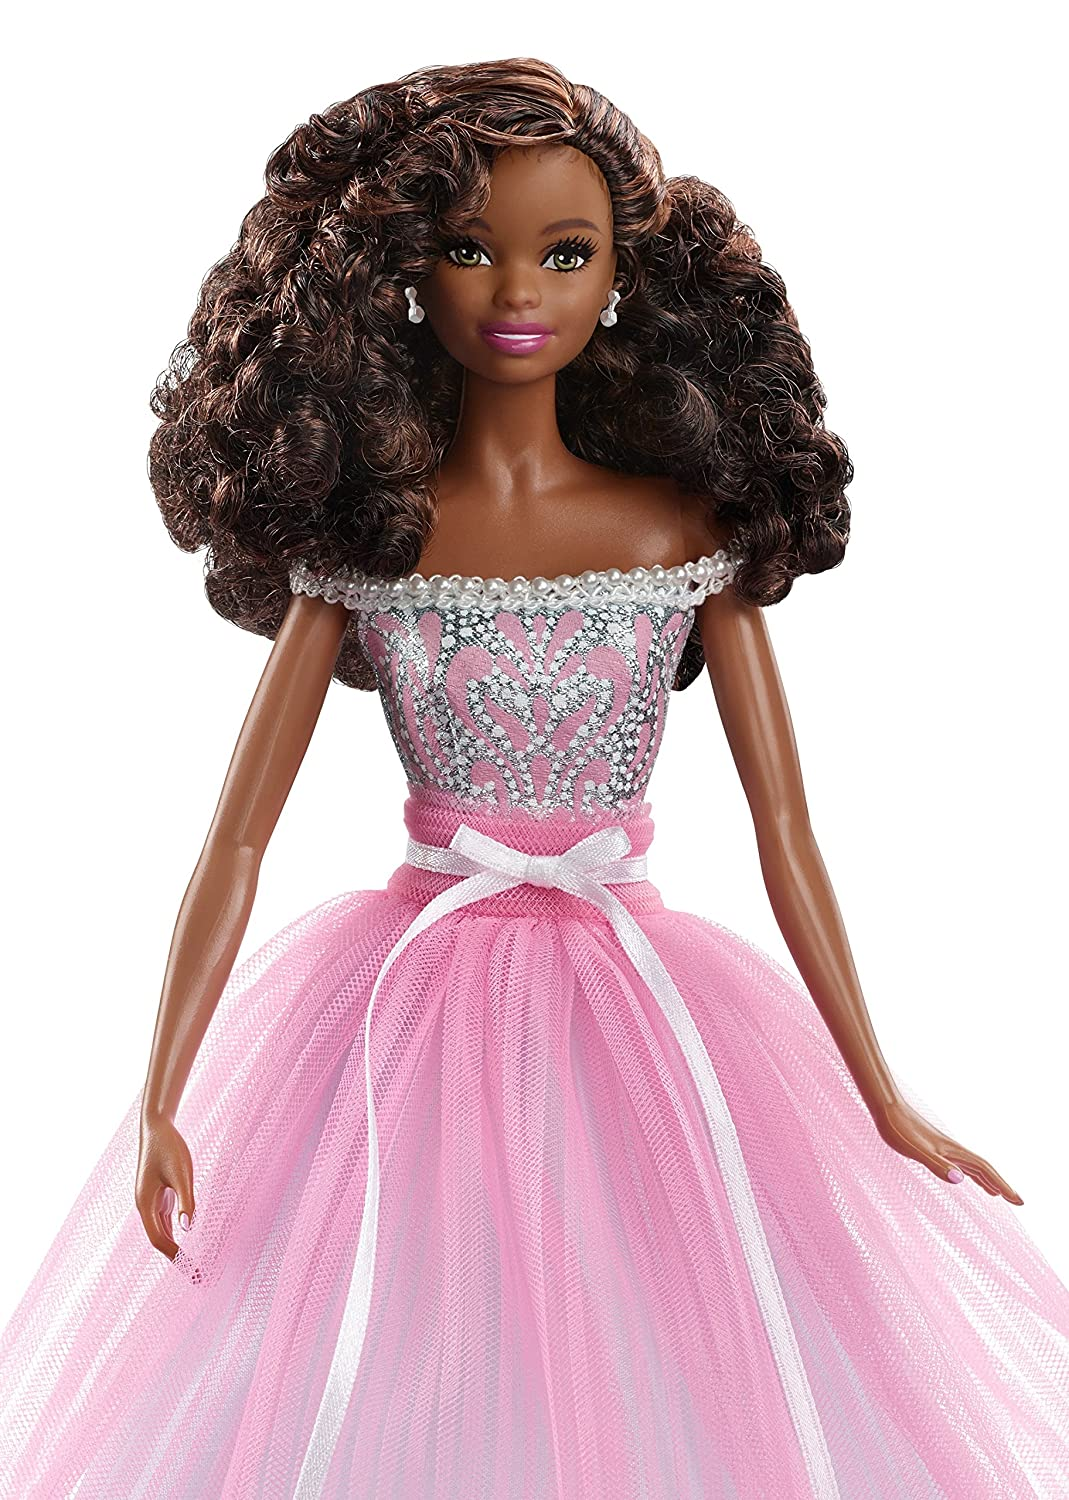 Barbie DVP50 887961373059 Collector Birthday Wishes Doll African American Amazoncouk Toys Games